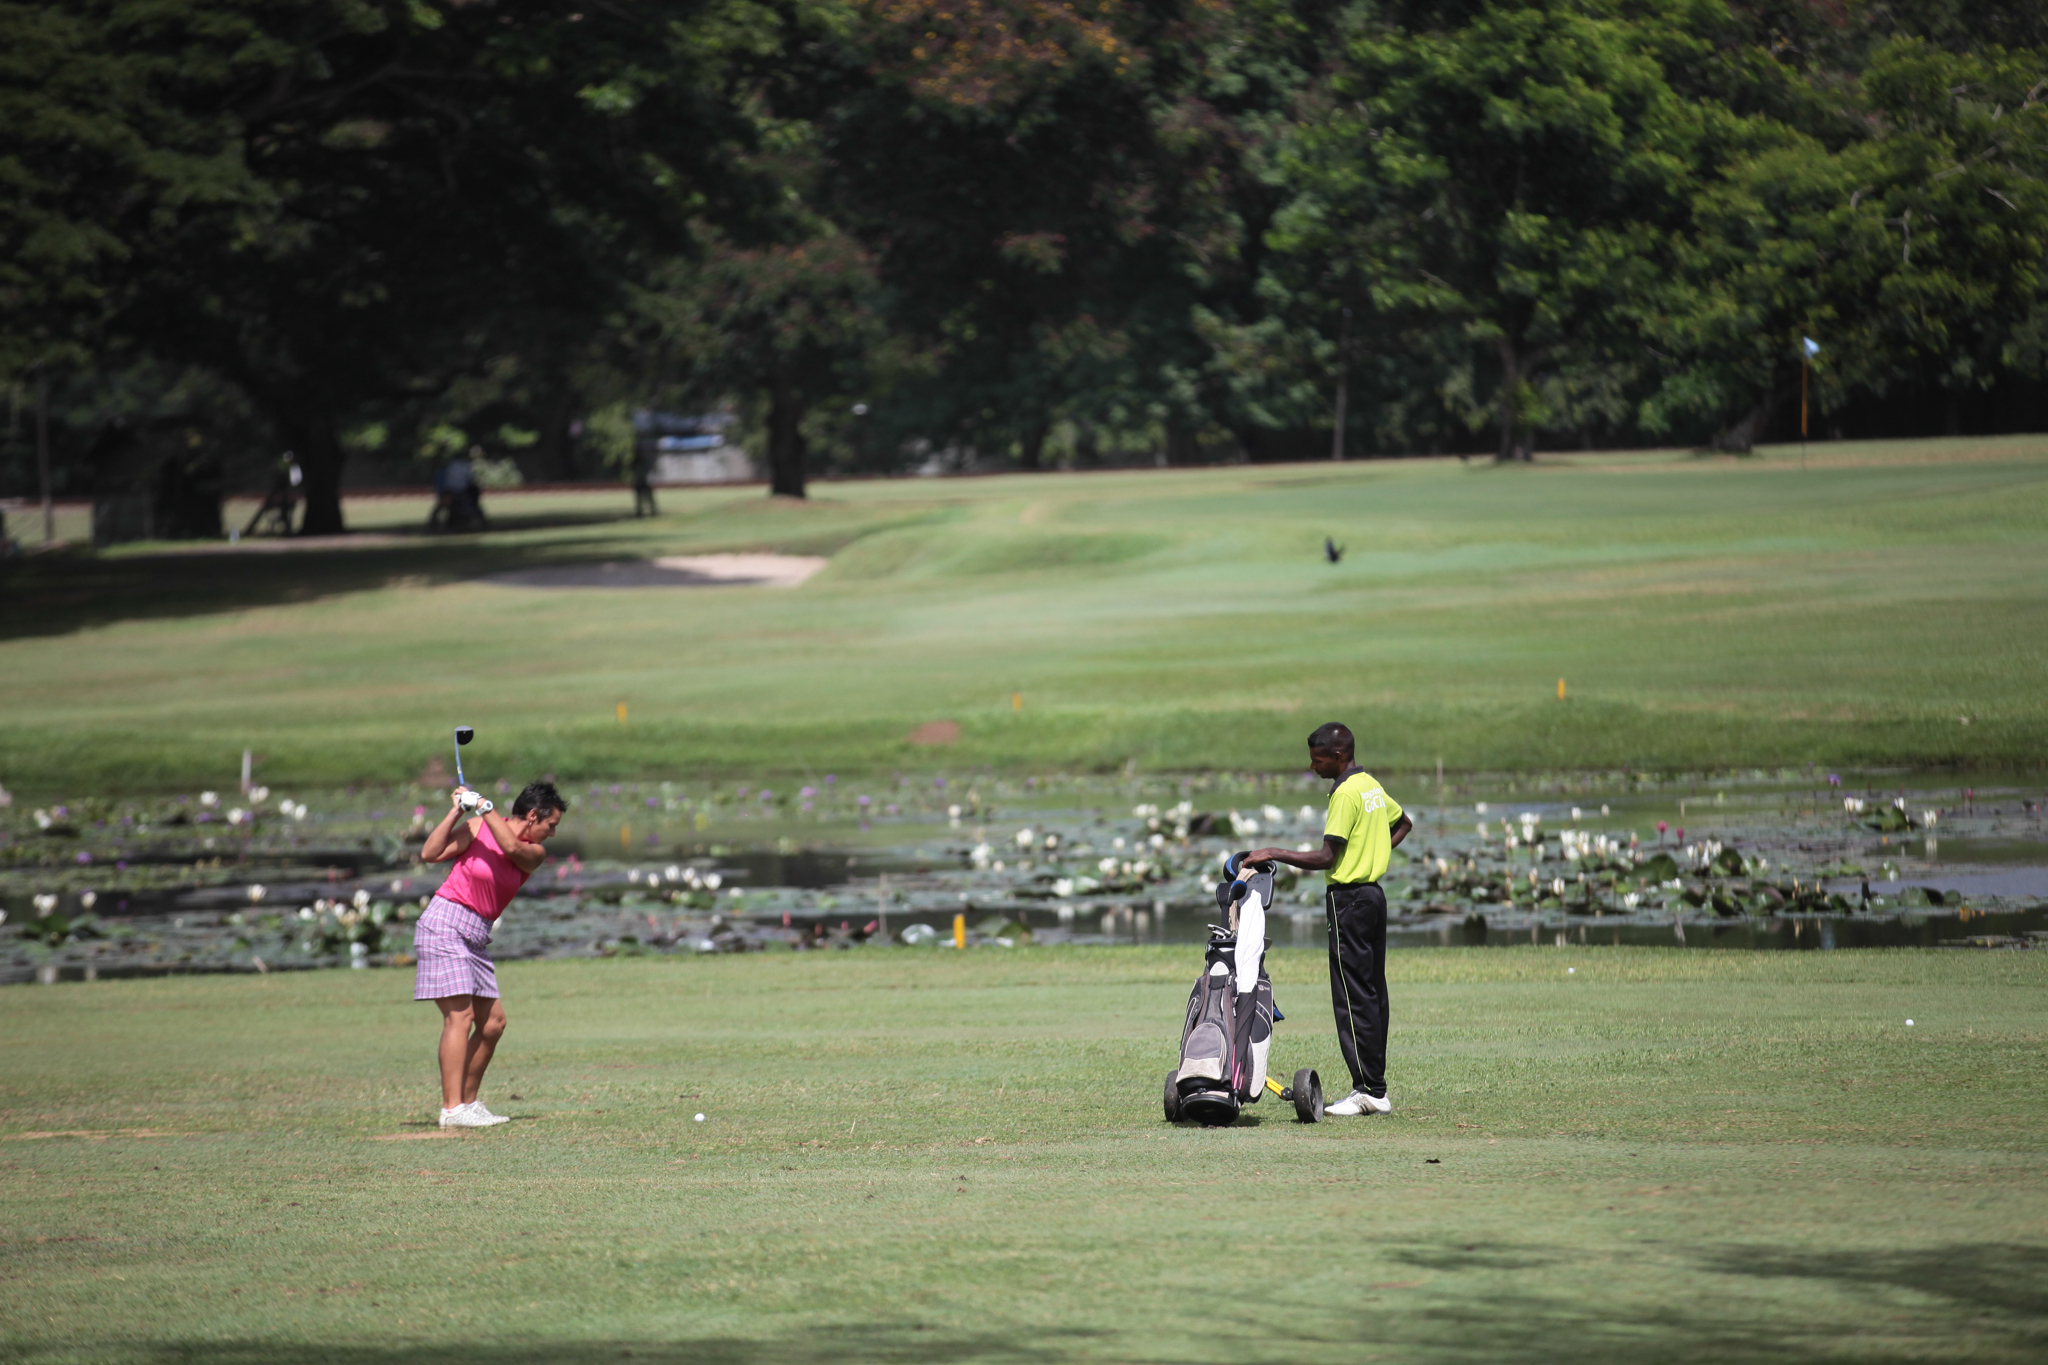 Royal Colombo Golf Club is a golf course in Colombo